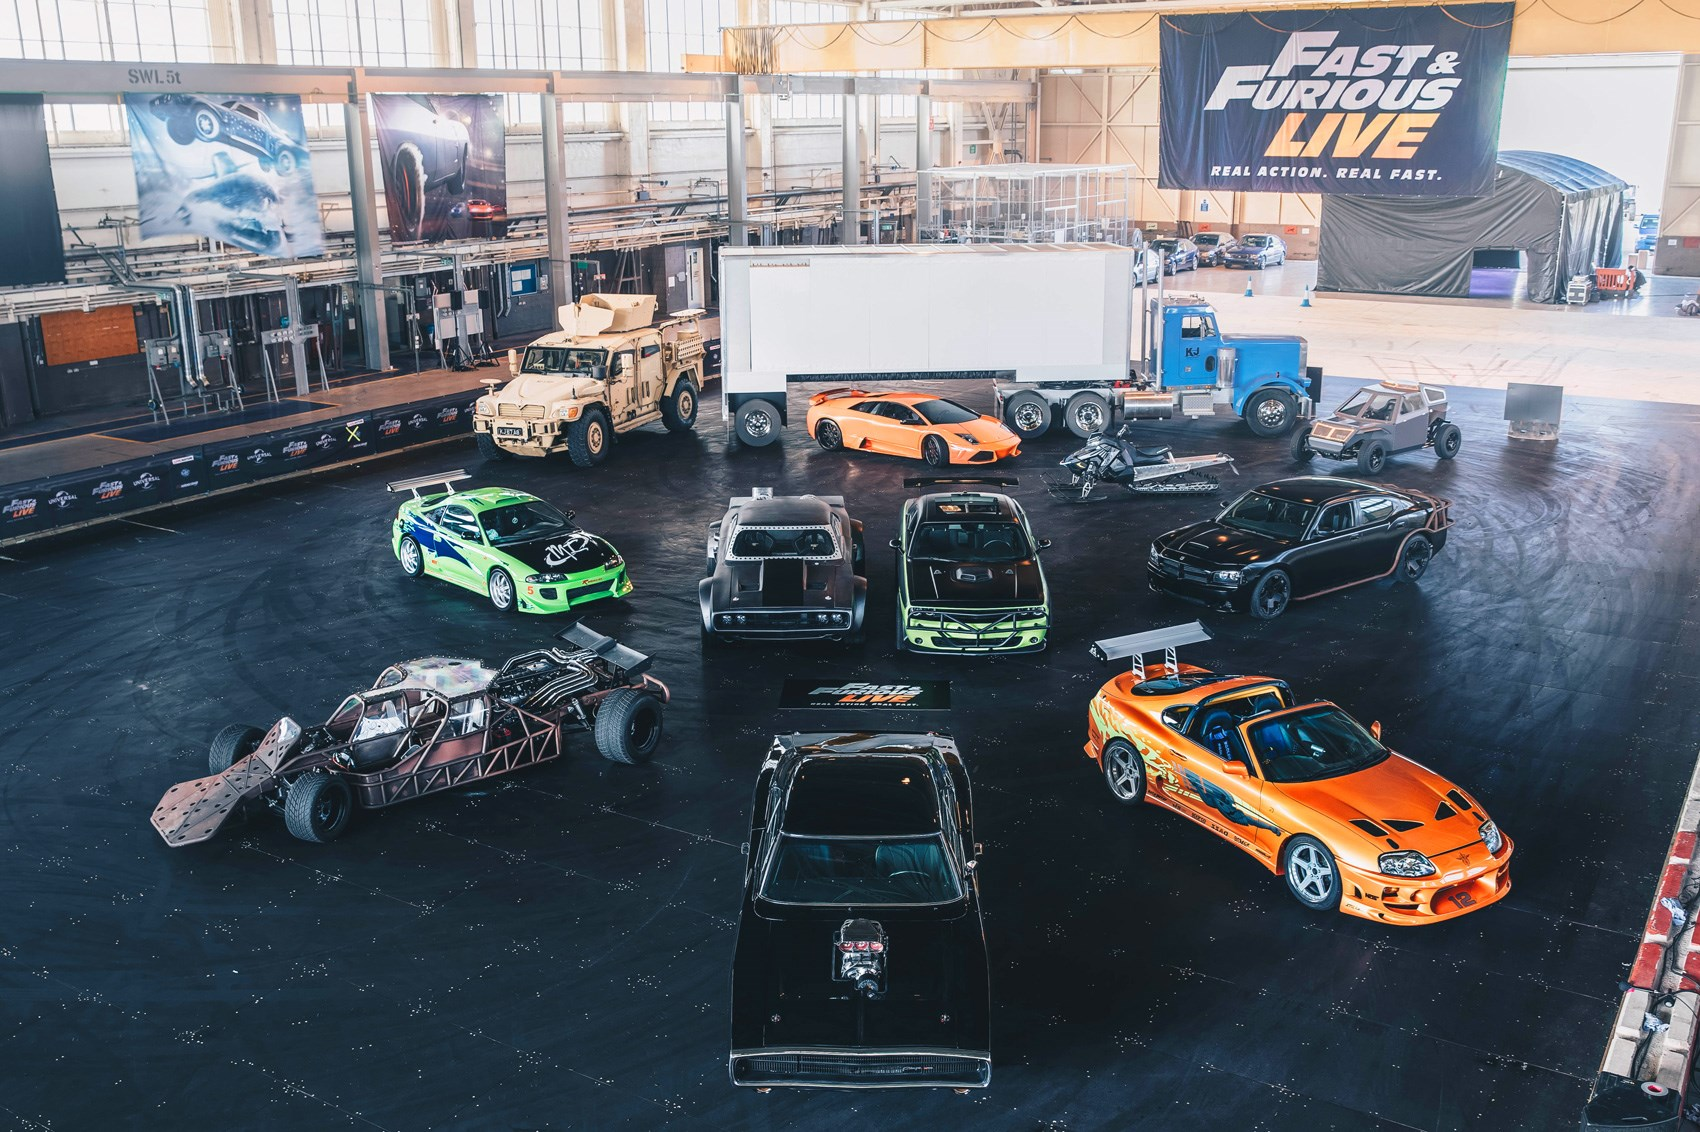 Fast And Furious Live Show All You Need To Know Car